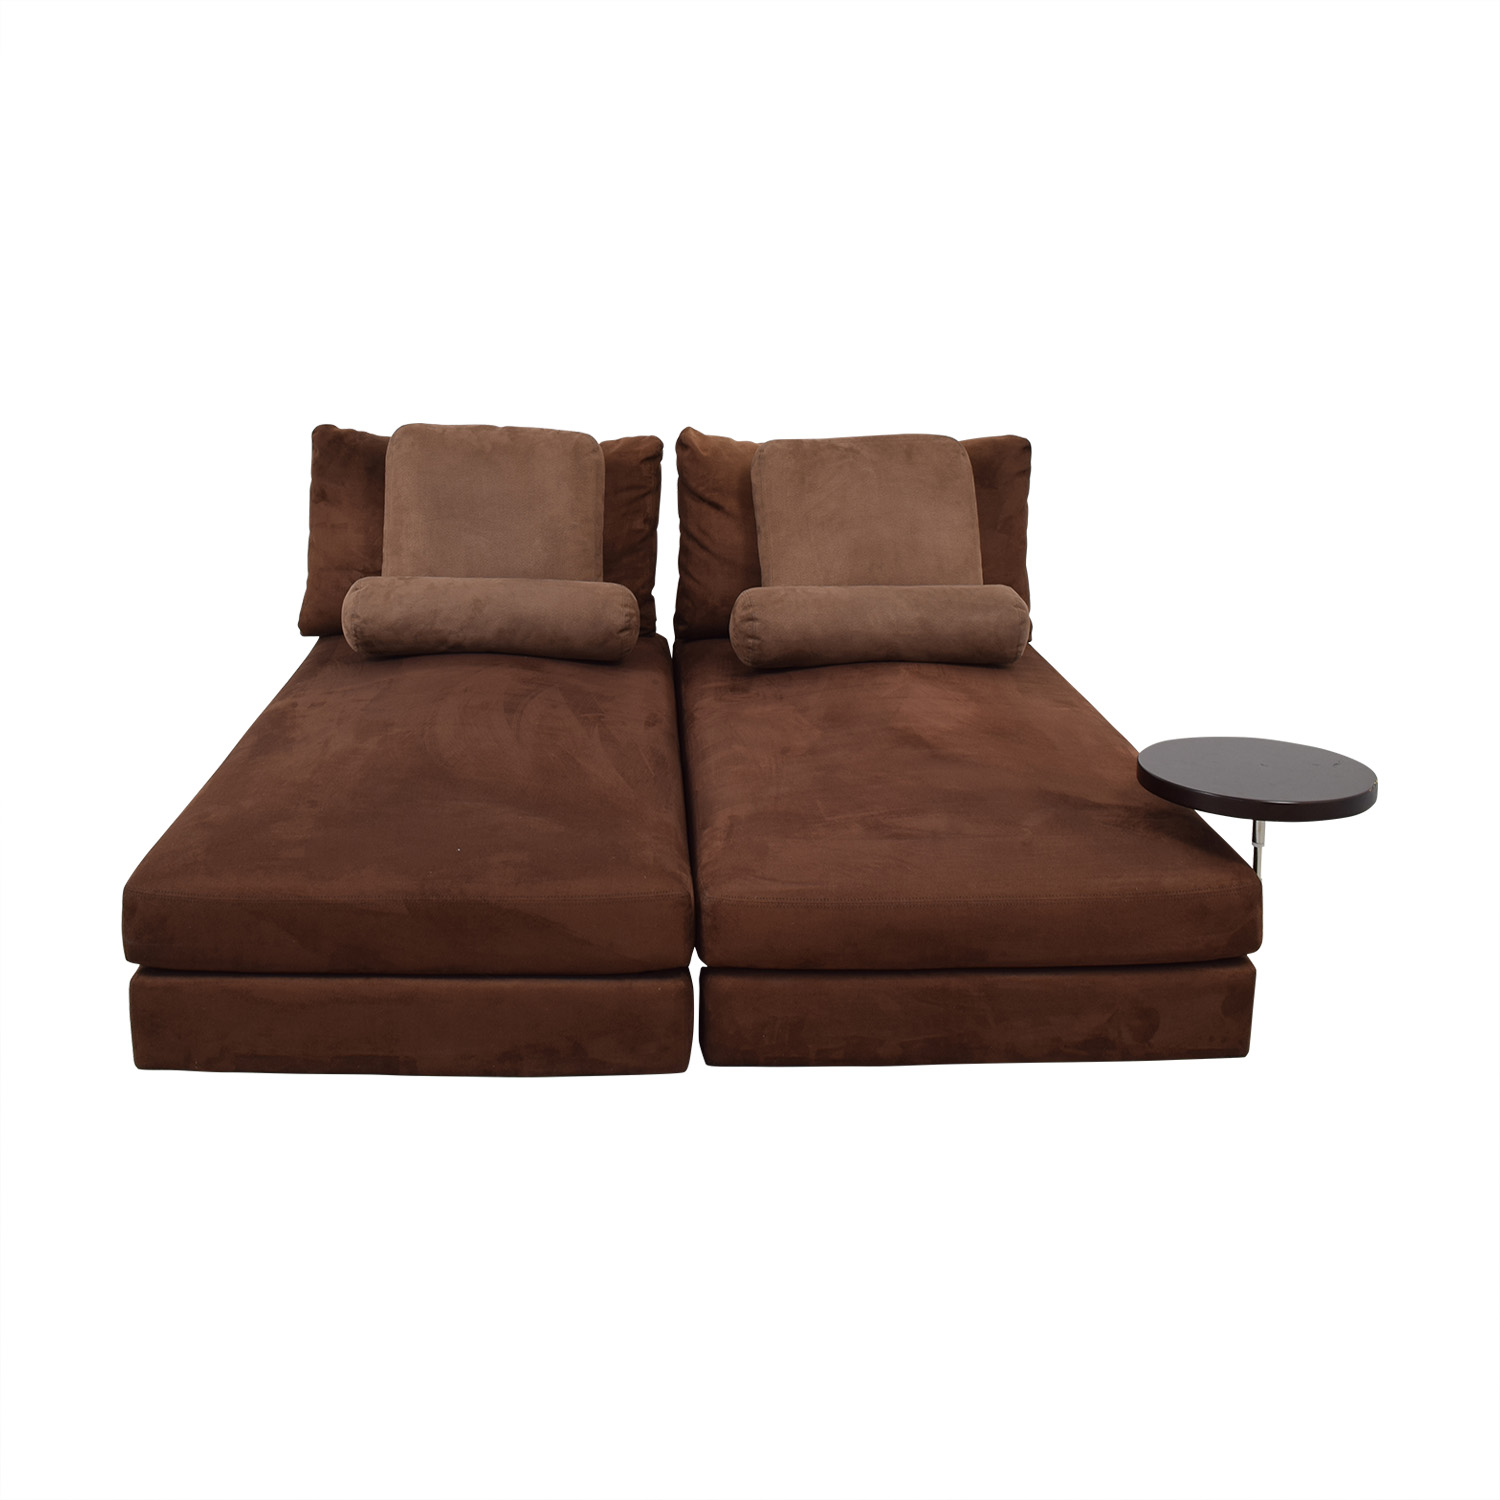 King Furniture Suede Chaise Sectional price